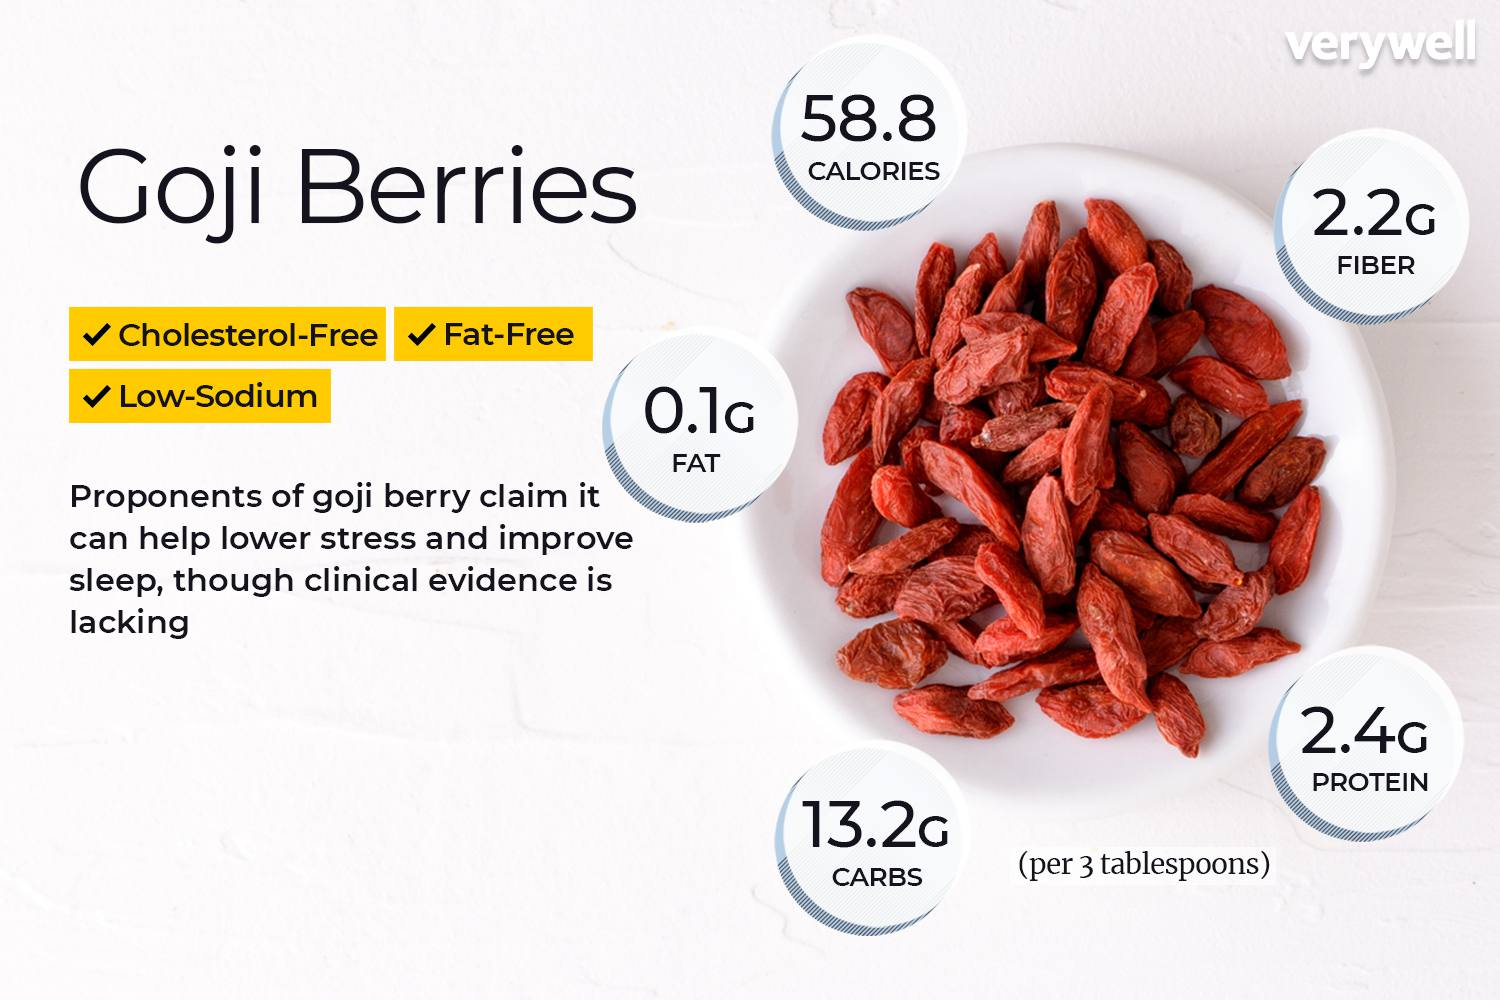 Goji Berry: Benefits, Side Effects, Dosage, and Interactions